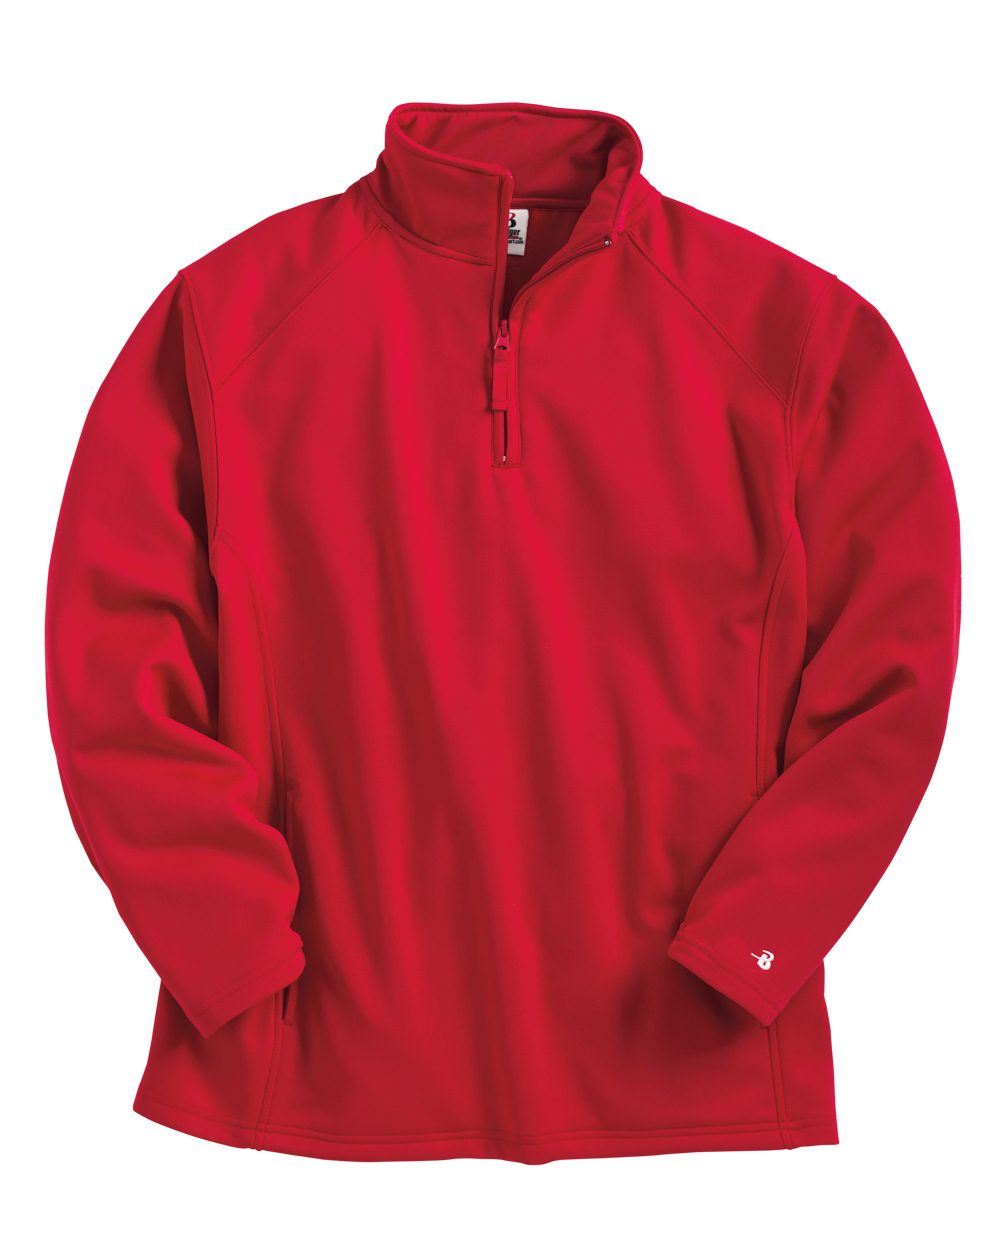 Badger Polyester Fleece Quarter-Zip Pullover - 1480